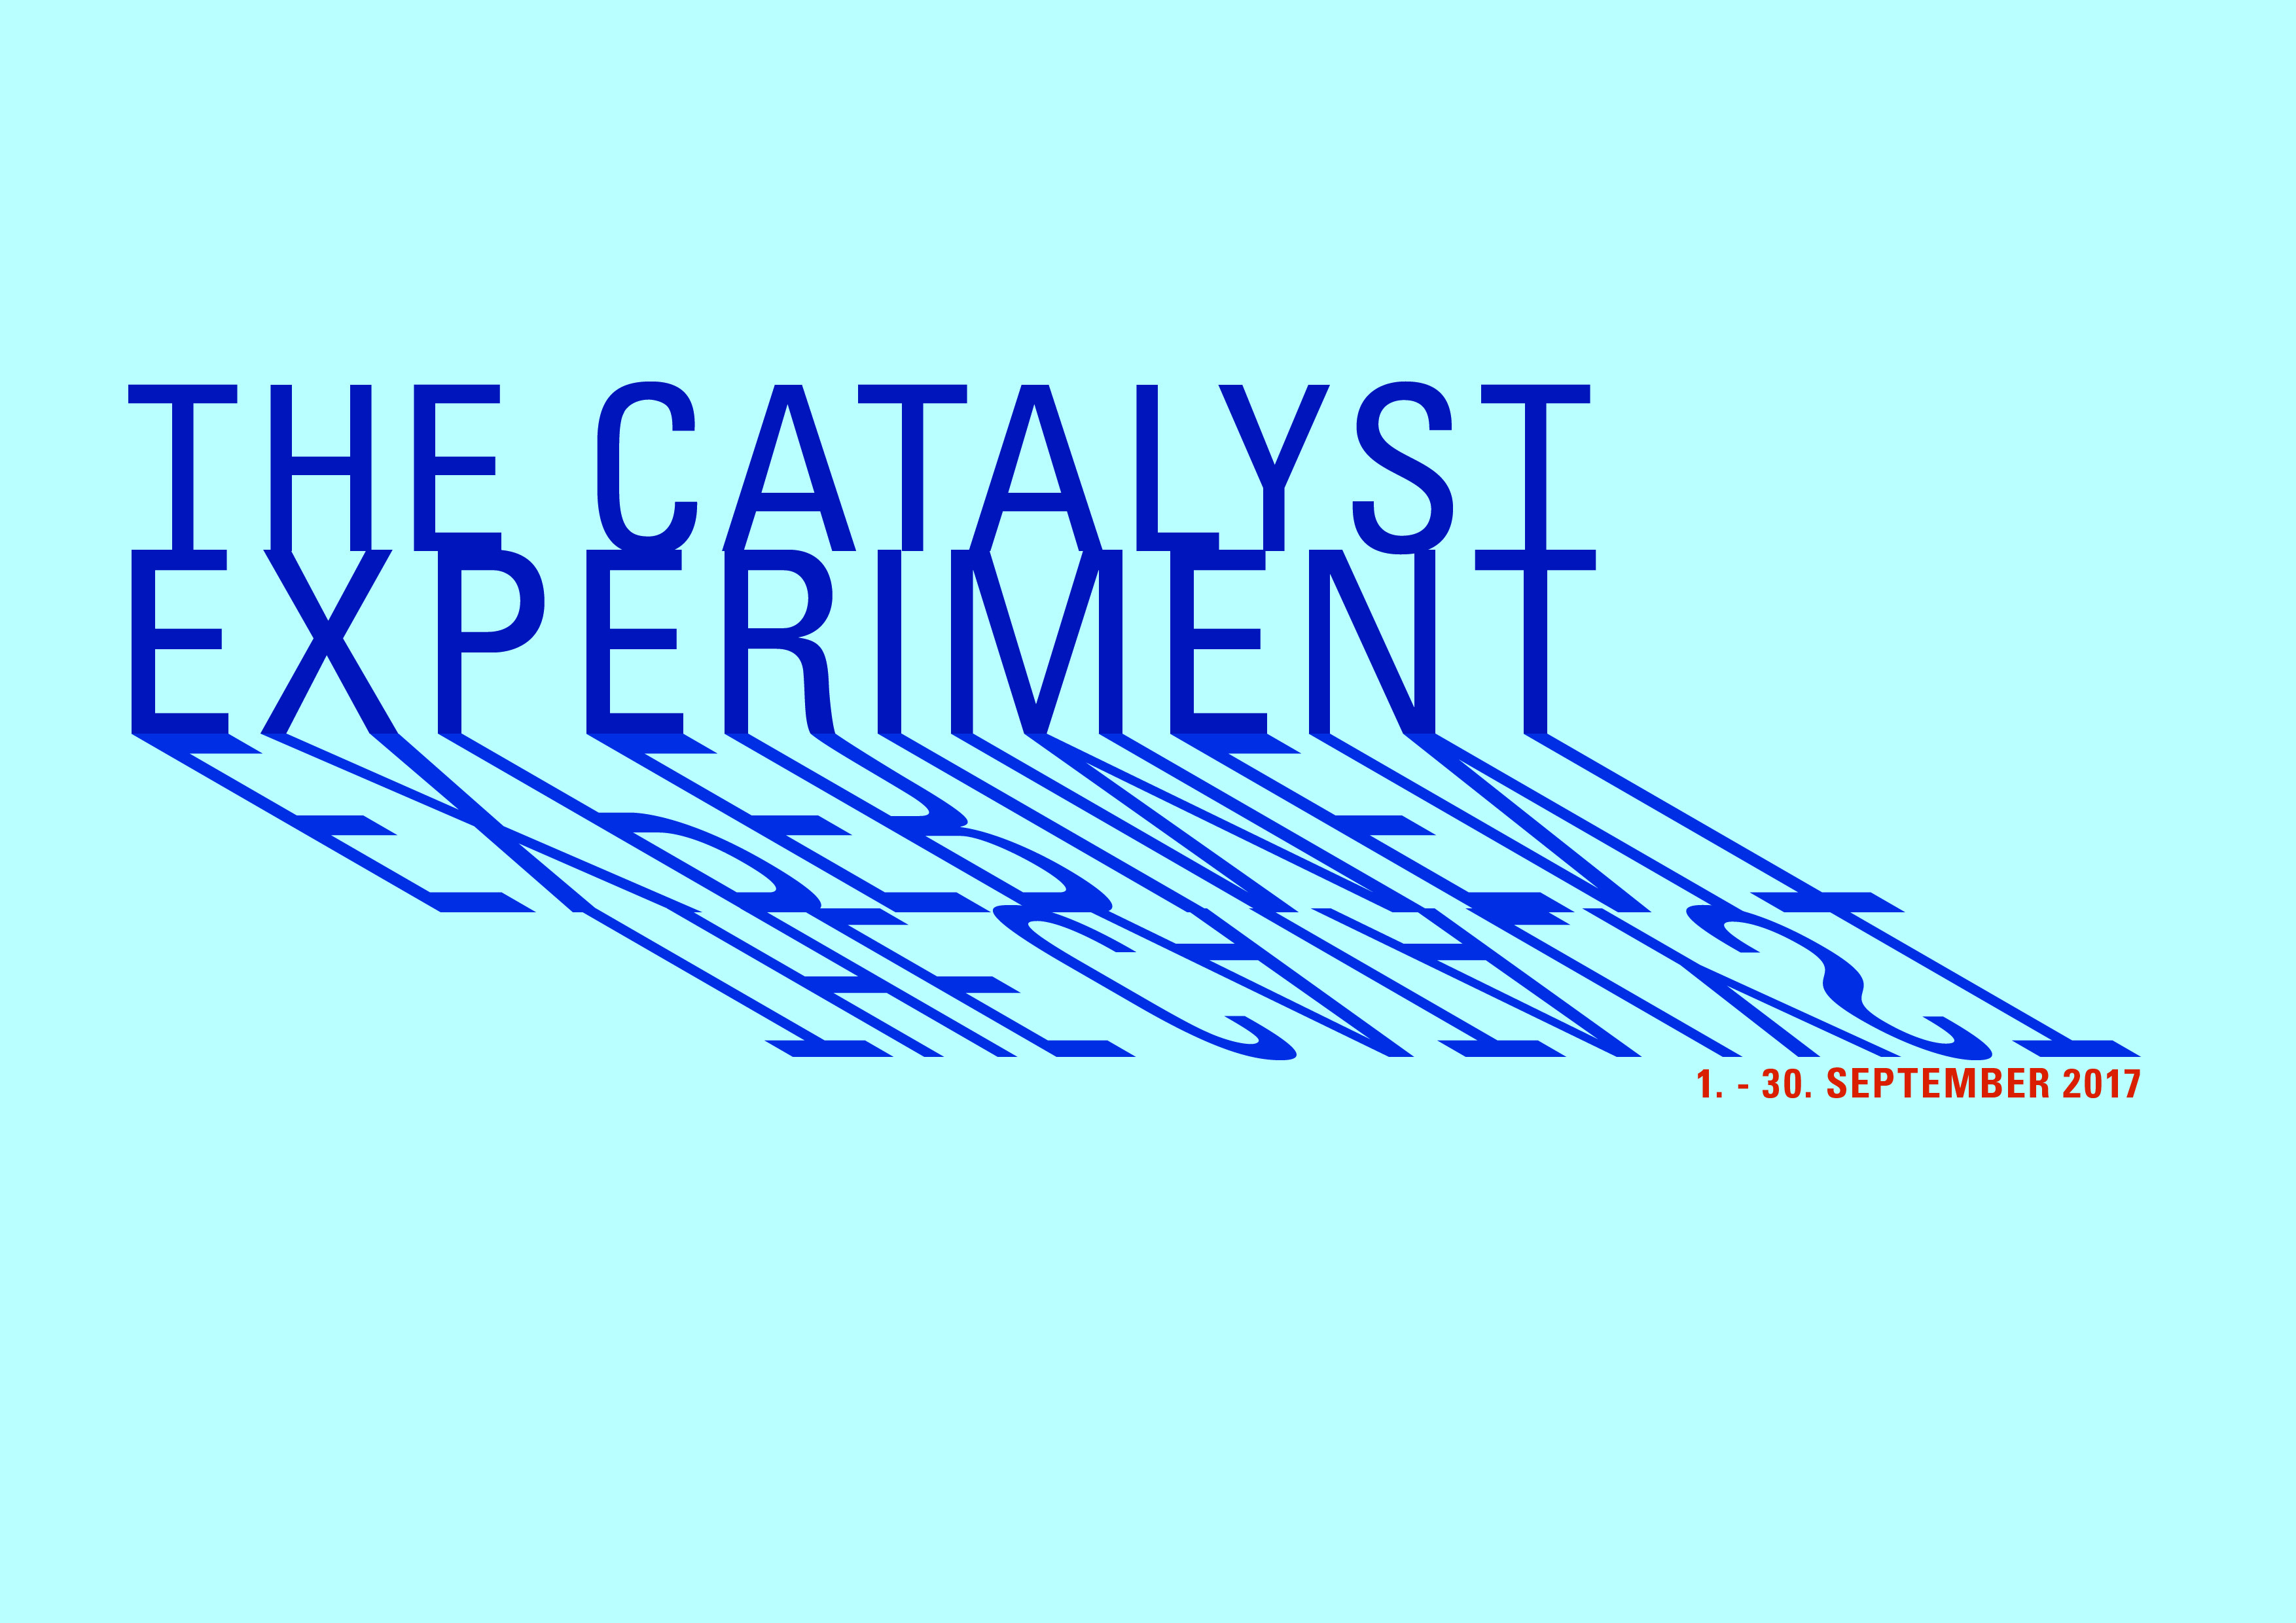 the-catalyst-experimentjpg-2 - 0